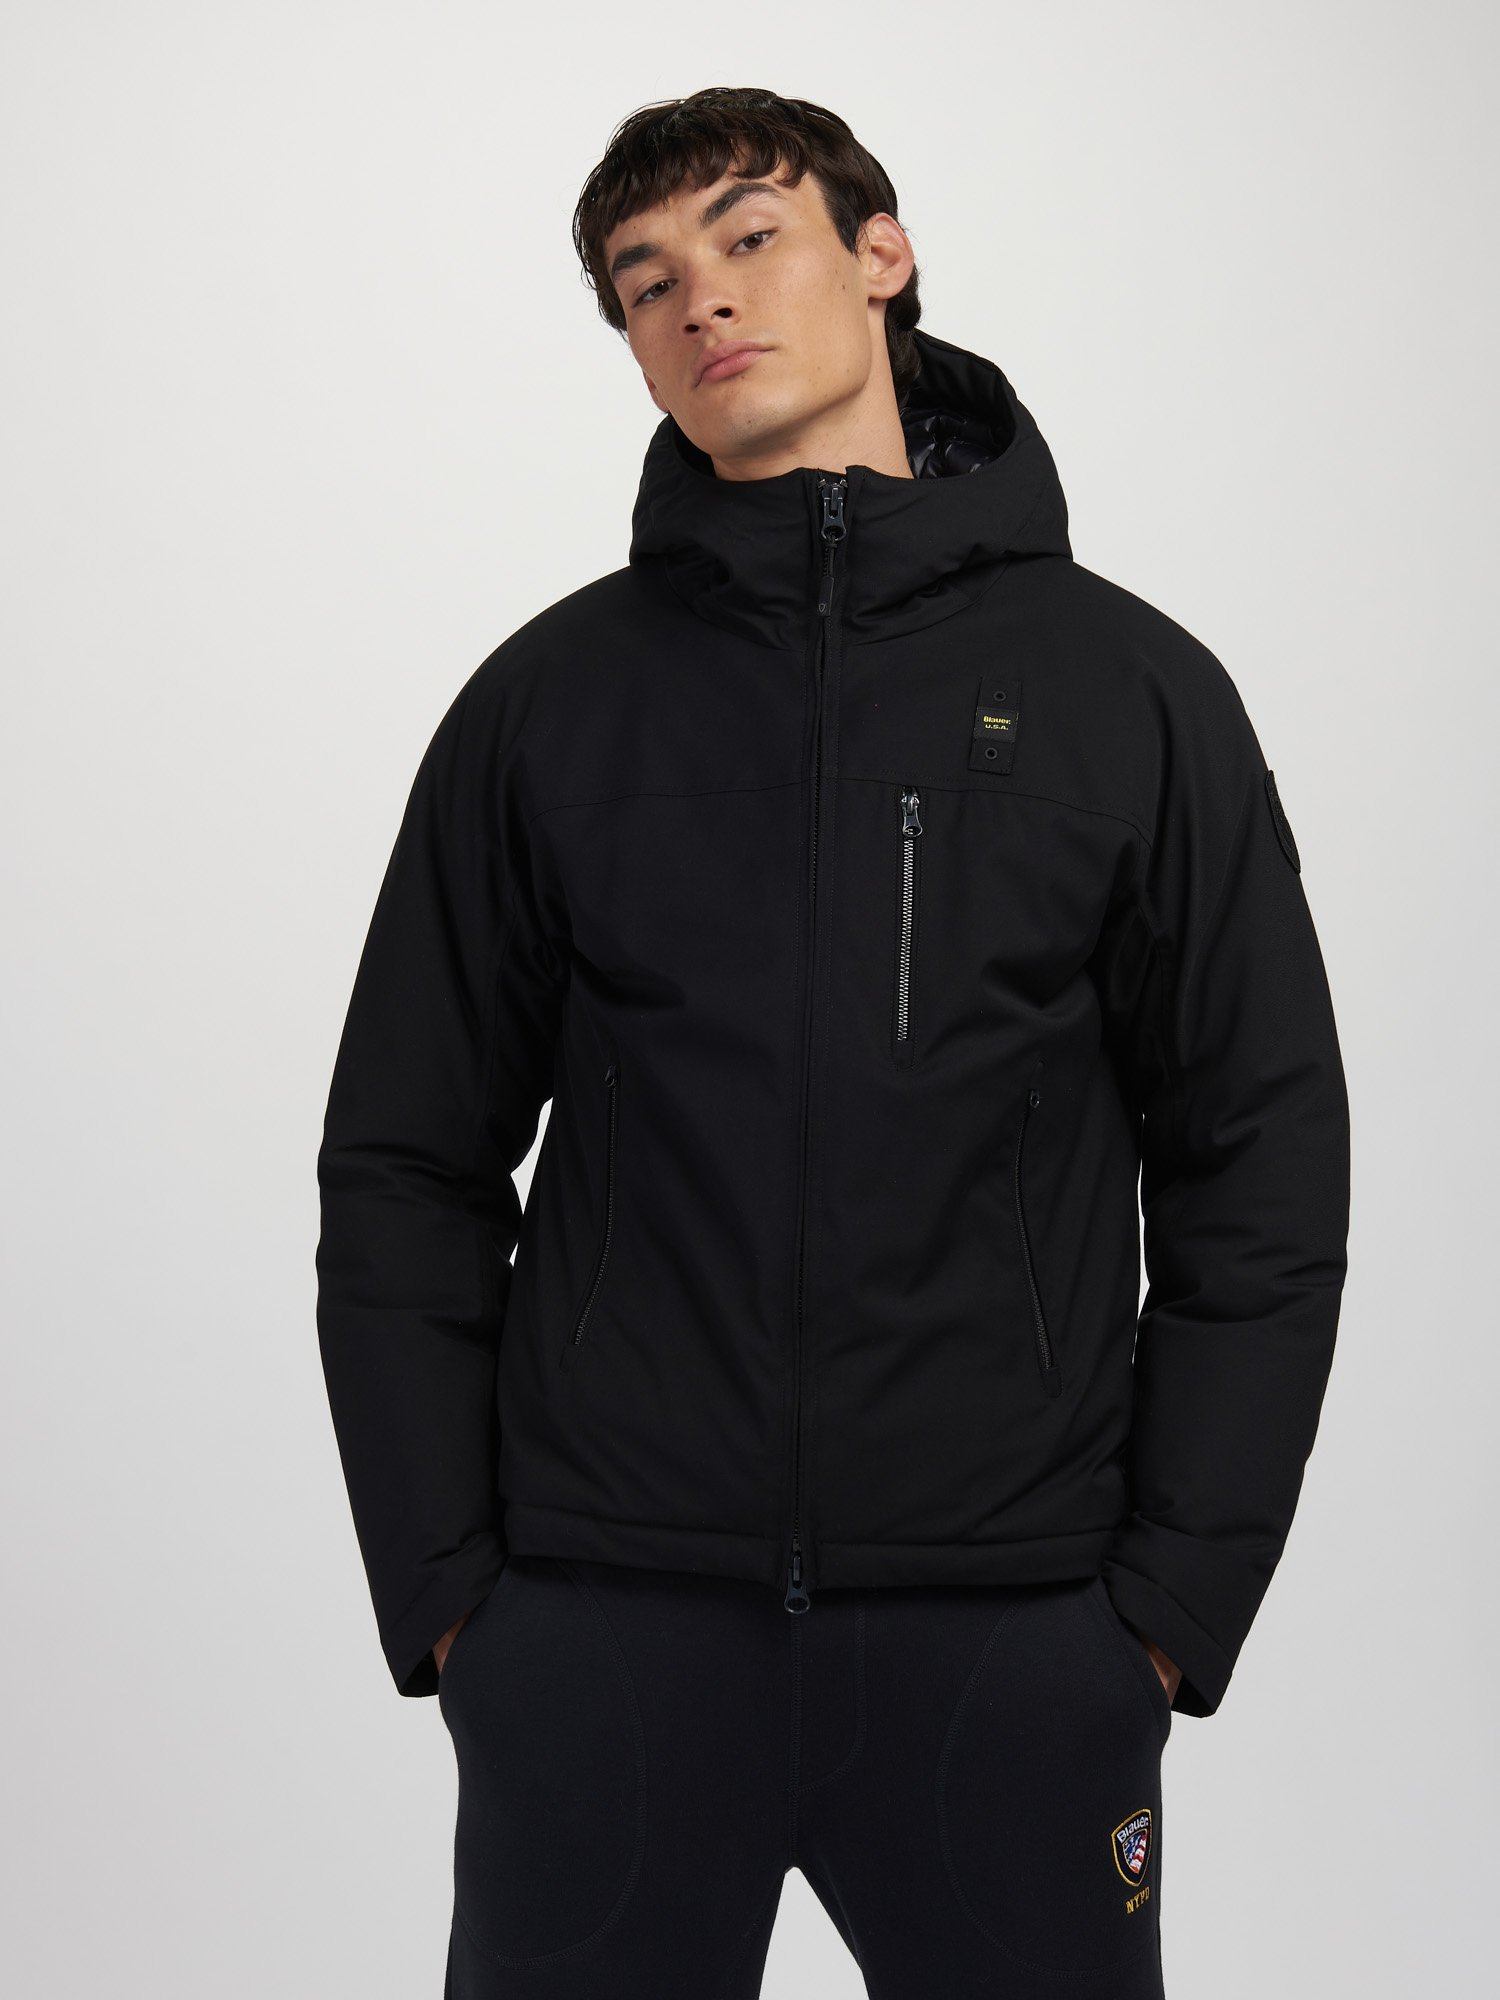 Blauer - TODD WOOL EFFECT DOWN JACKET - Black - Blauer